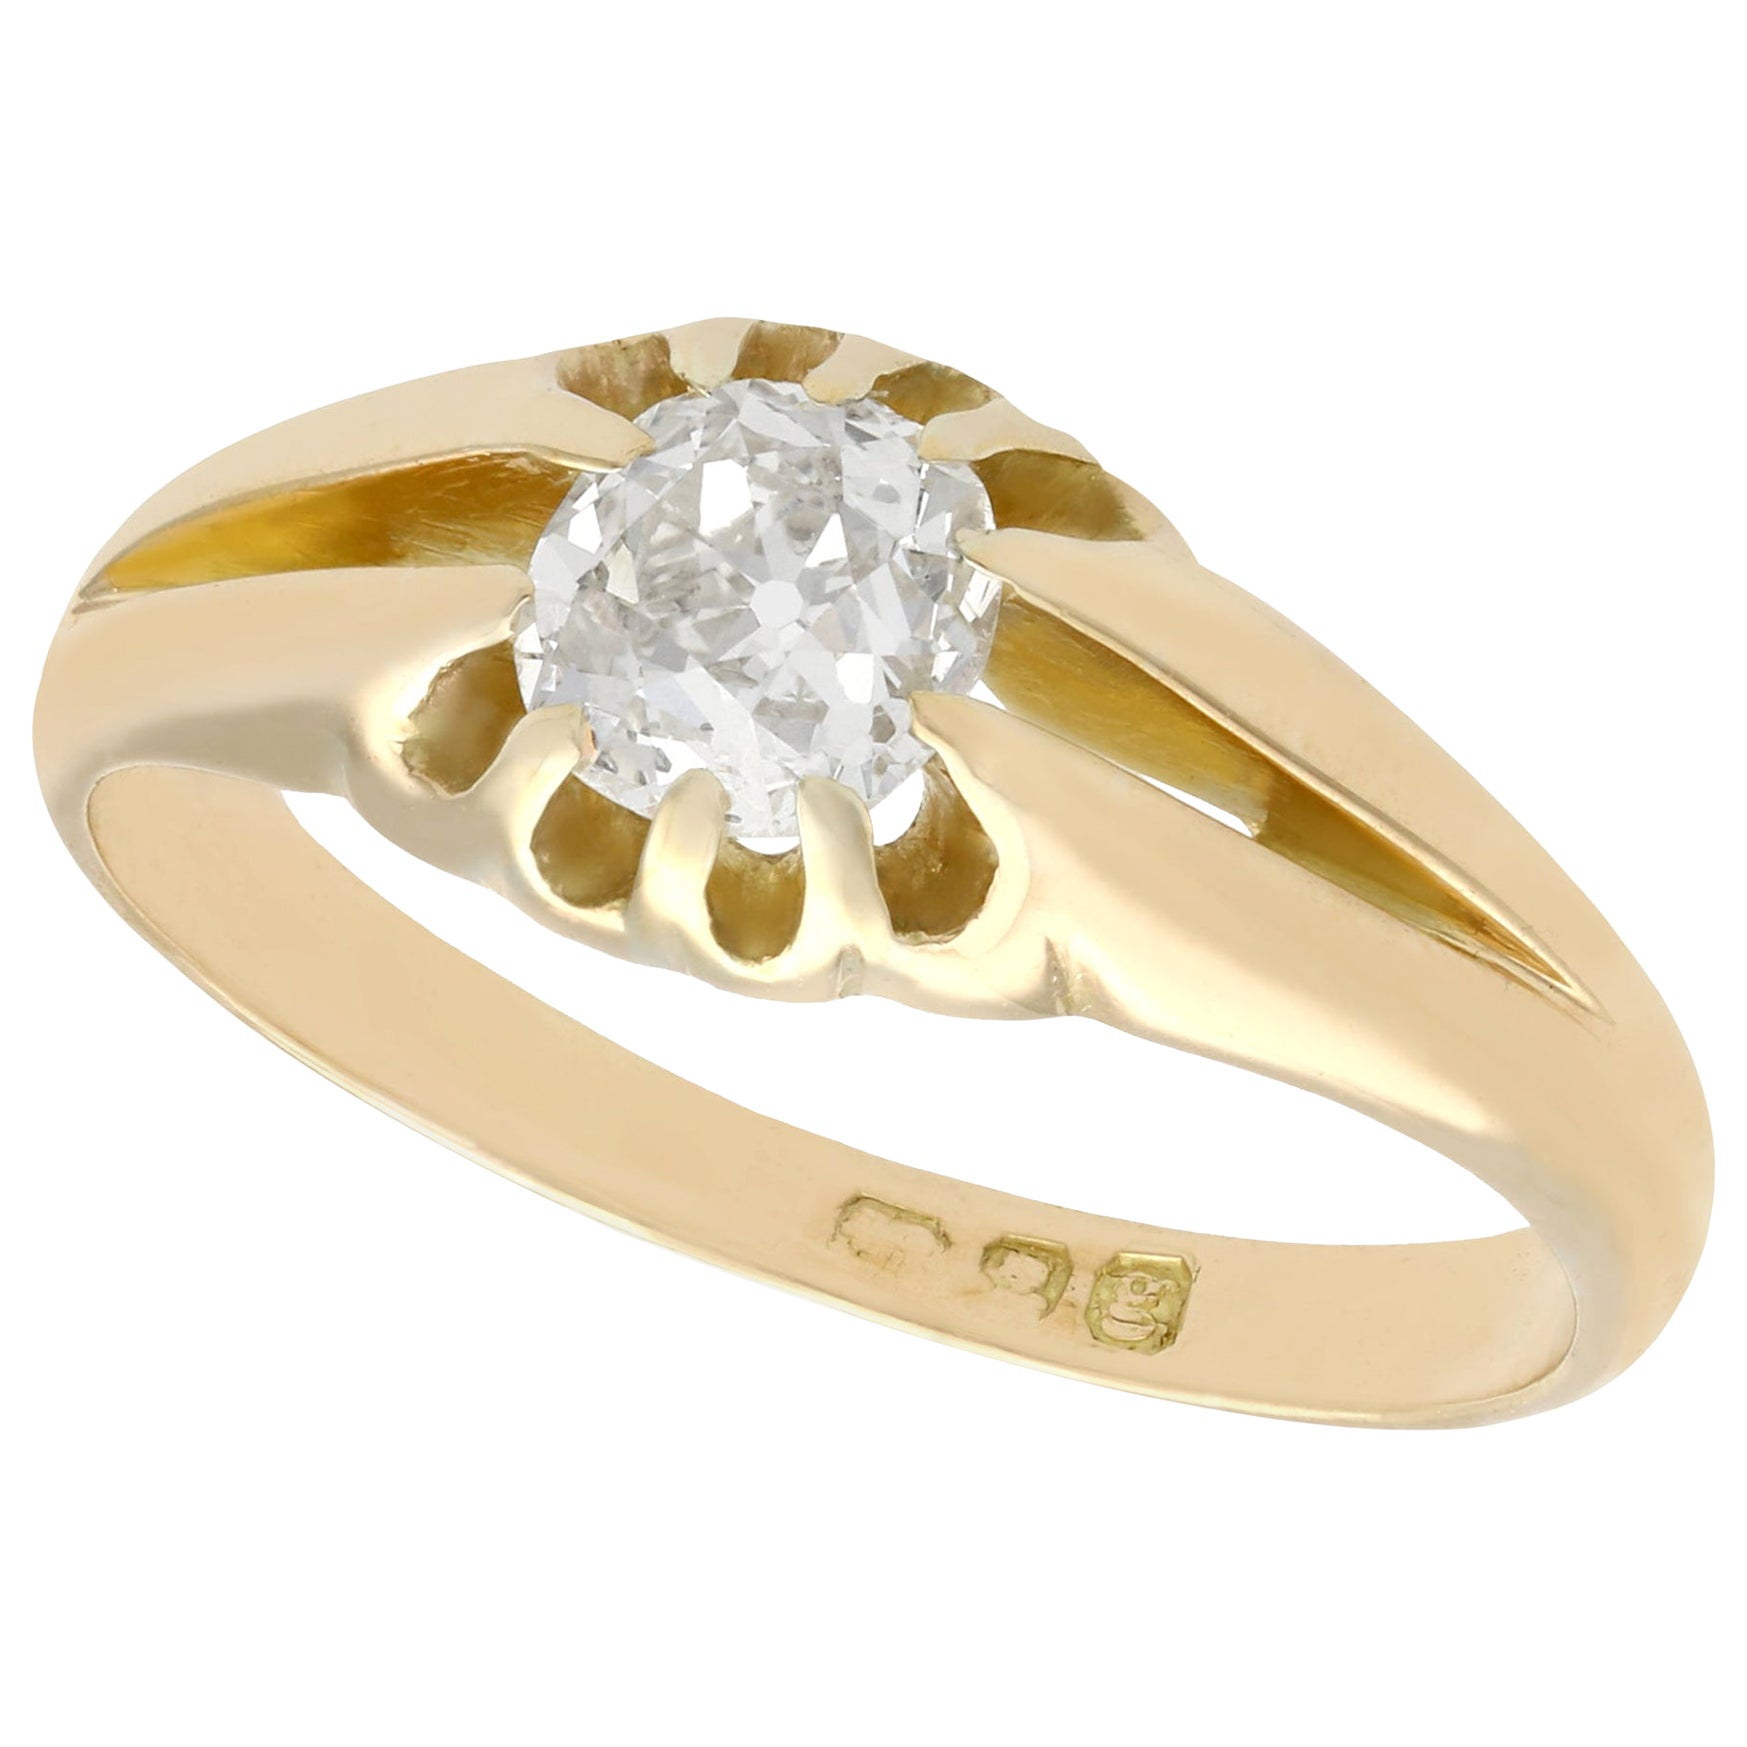 Antique 1900s Diamond and Yellow Gold Ring